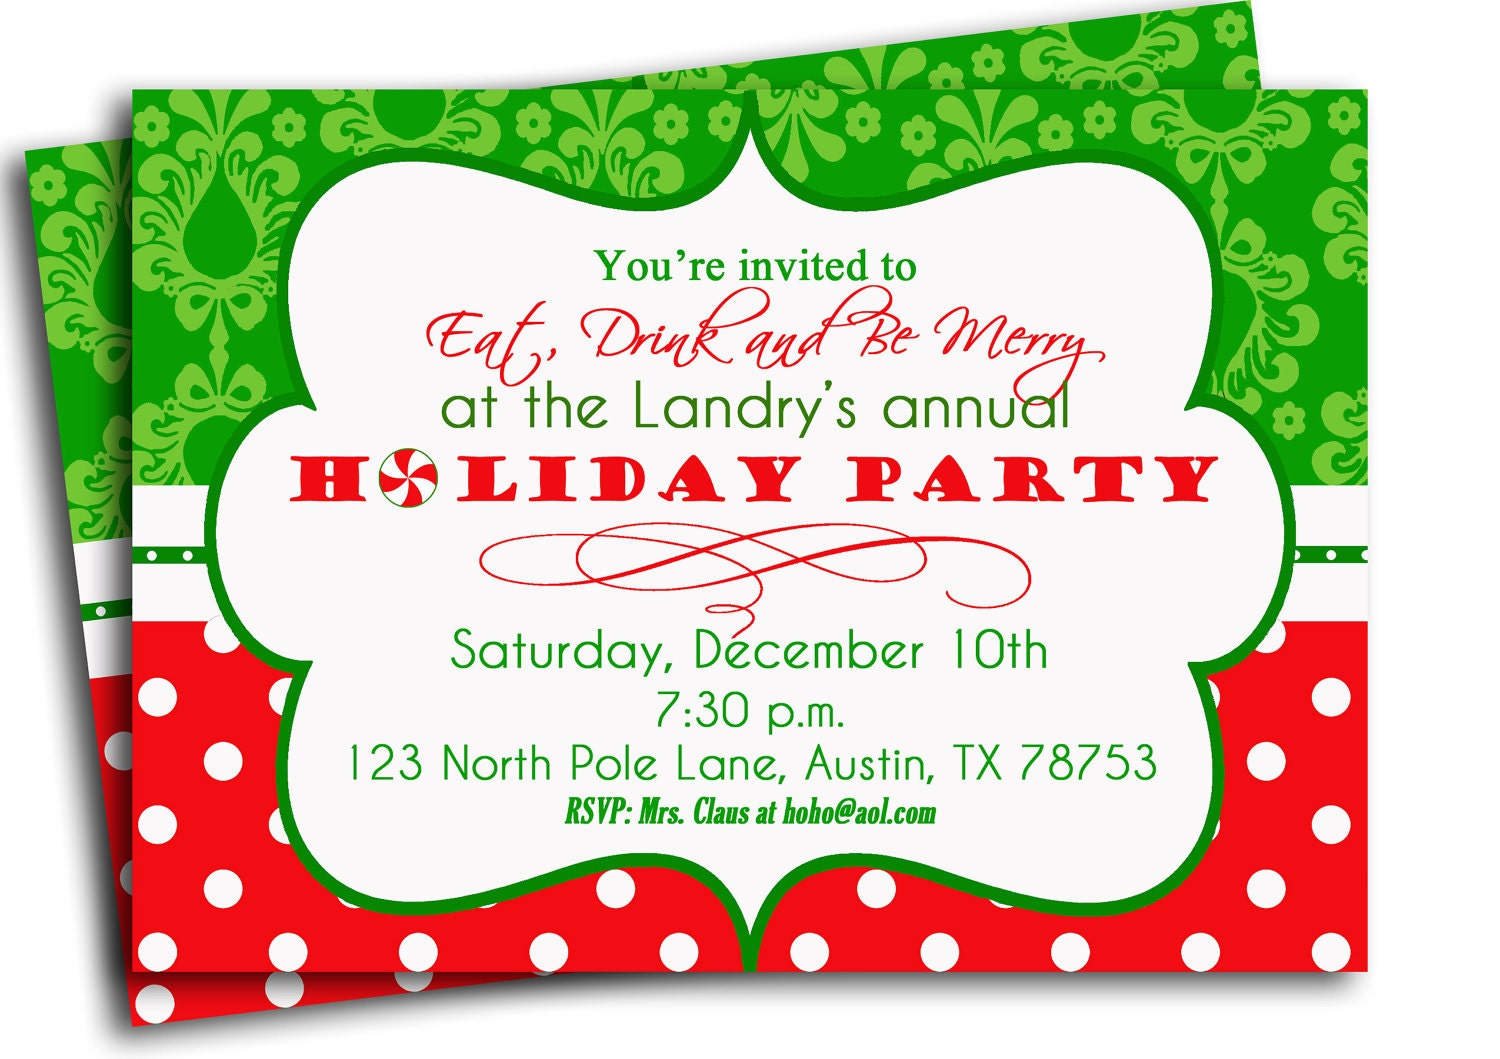 Christmas Party Invitation Printable Traditional Holiday – Invitations for Christmas Party